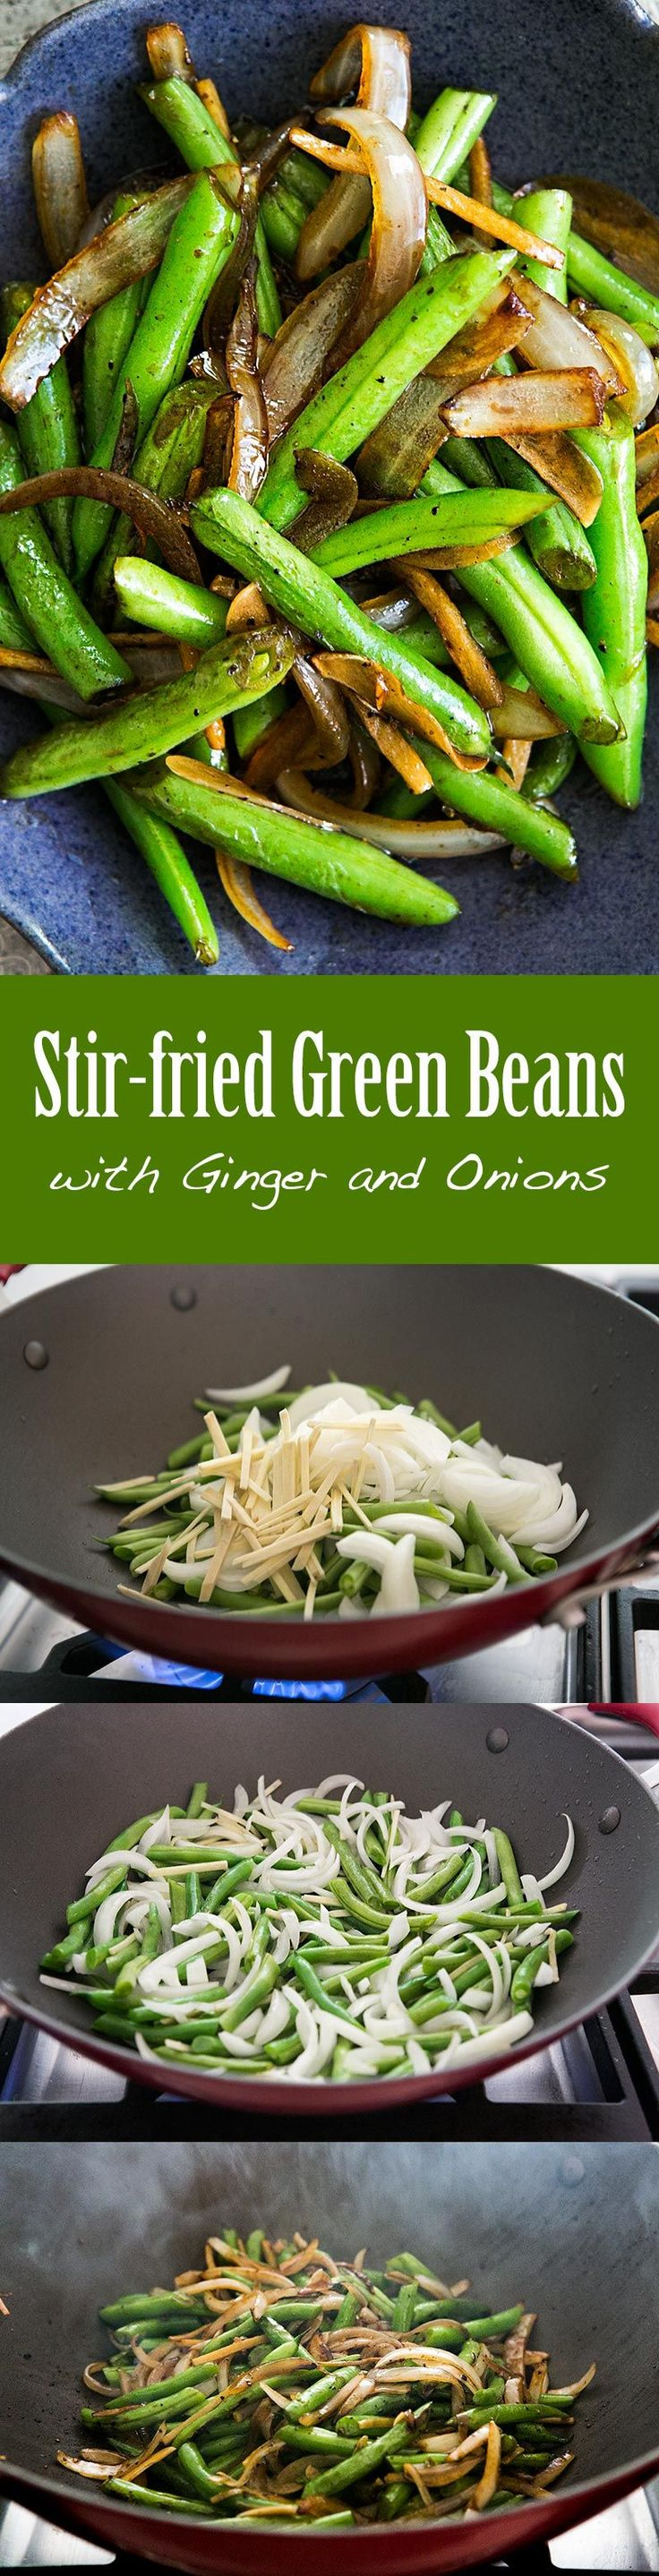 1 pot! Easy! Green beans stir fried with ginger, onions, garlic and a little soy sauce. Cooks up in less than 10 minutes!